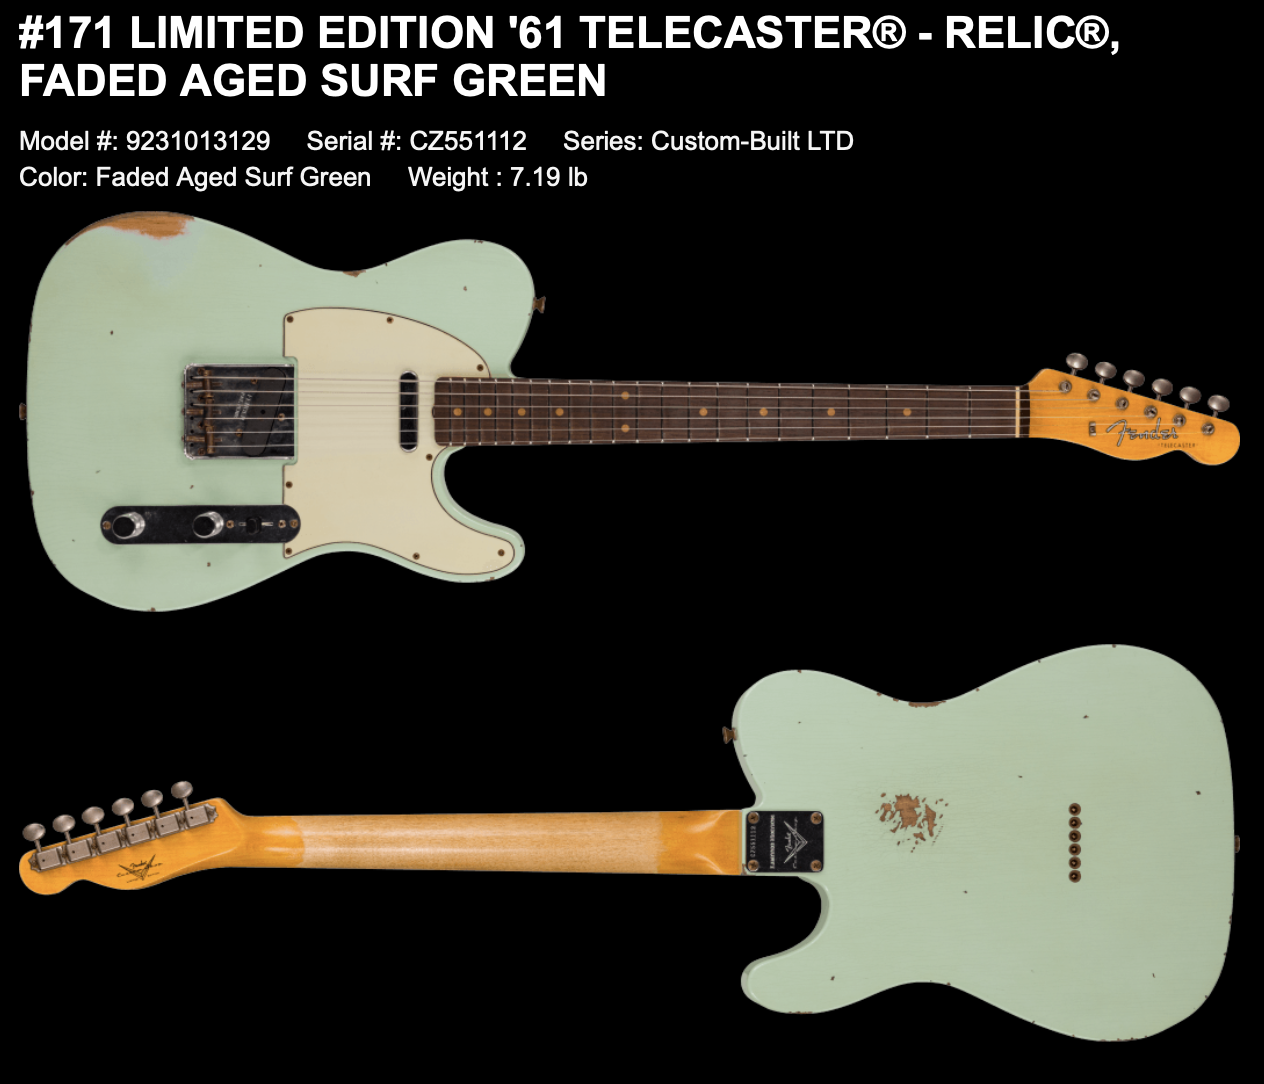 (PRE-ORDER) FENDER CUSTOM SHOP LIMITED EDITION '61 TELECASTER RELIC IN FADED AGED SURF GREEN